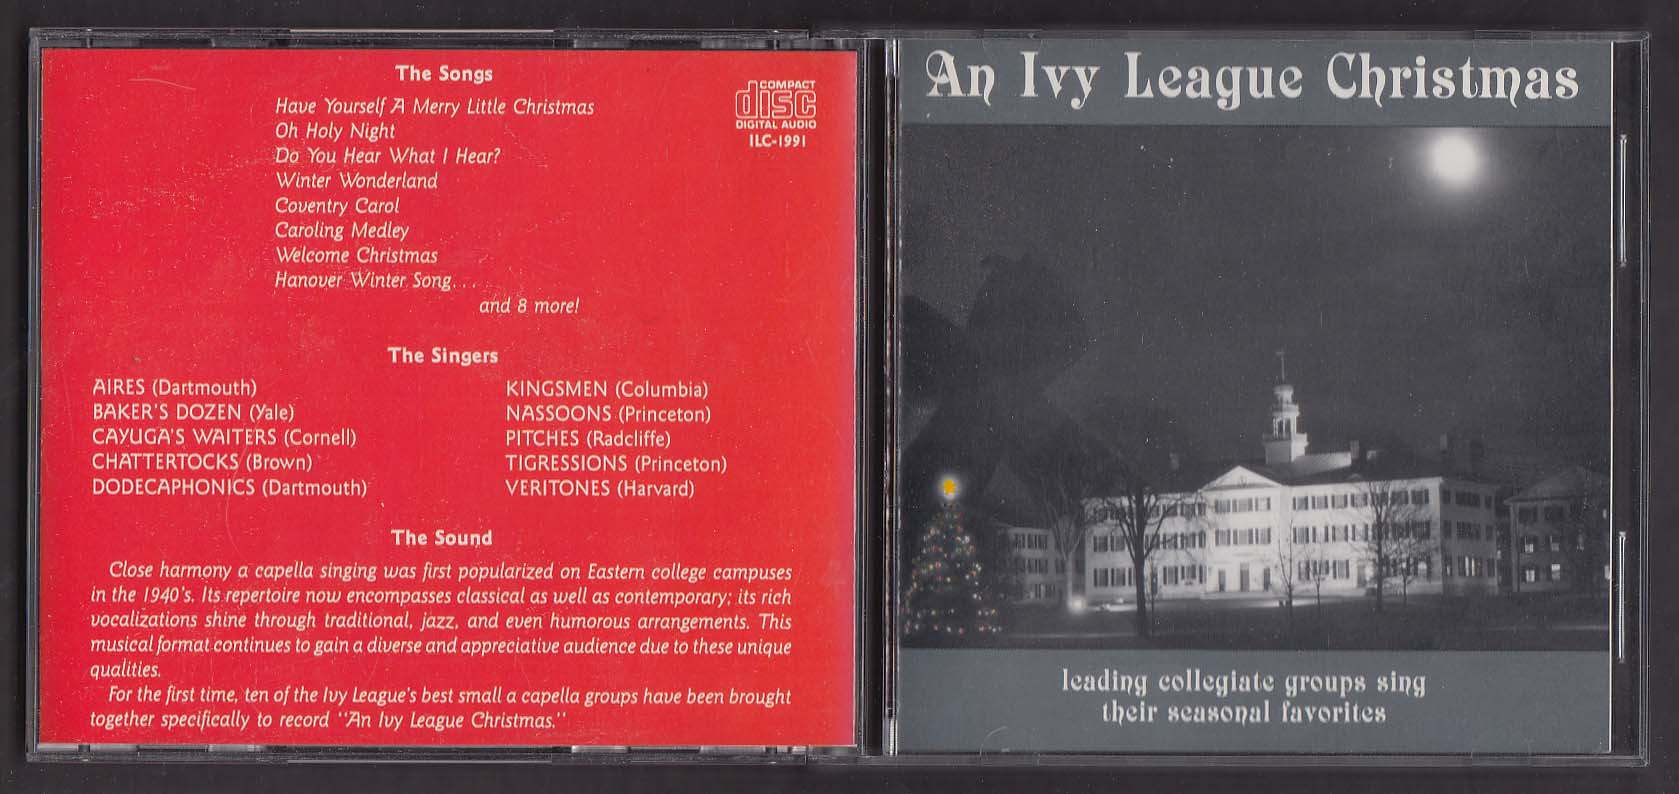 An Ivy League Christmas ILC-1991 CD Darmouth Yale Cornell Princeton Harvard ++